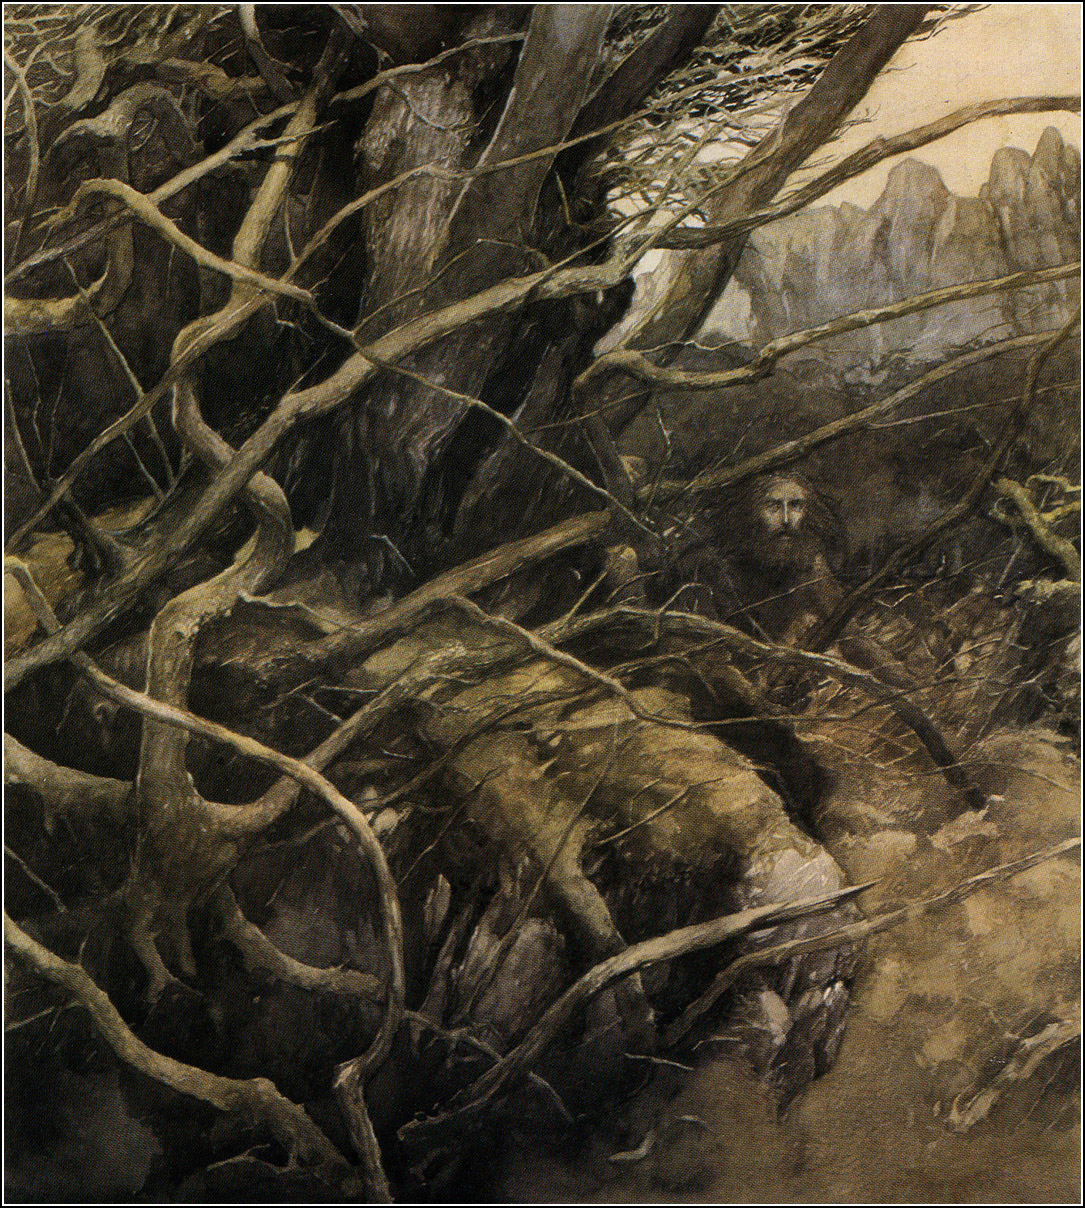 Alan Lee, The Mabinogion